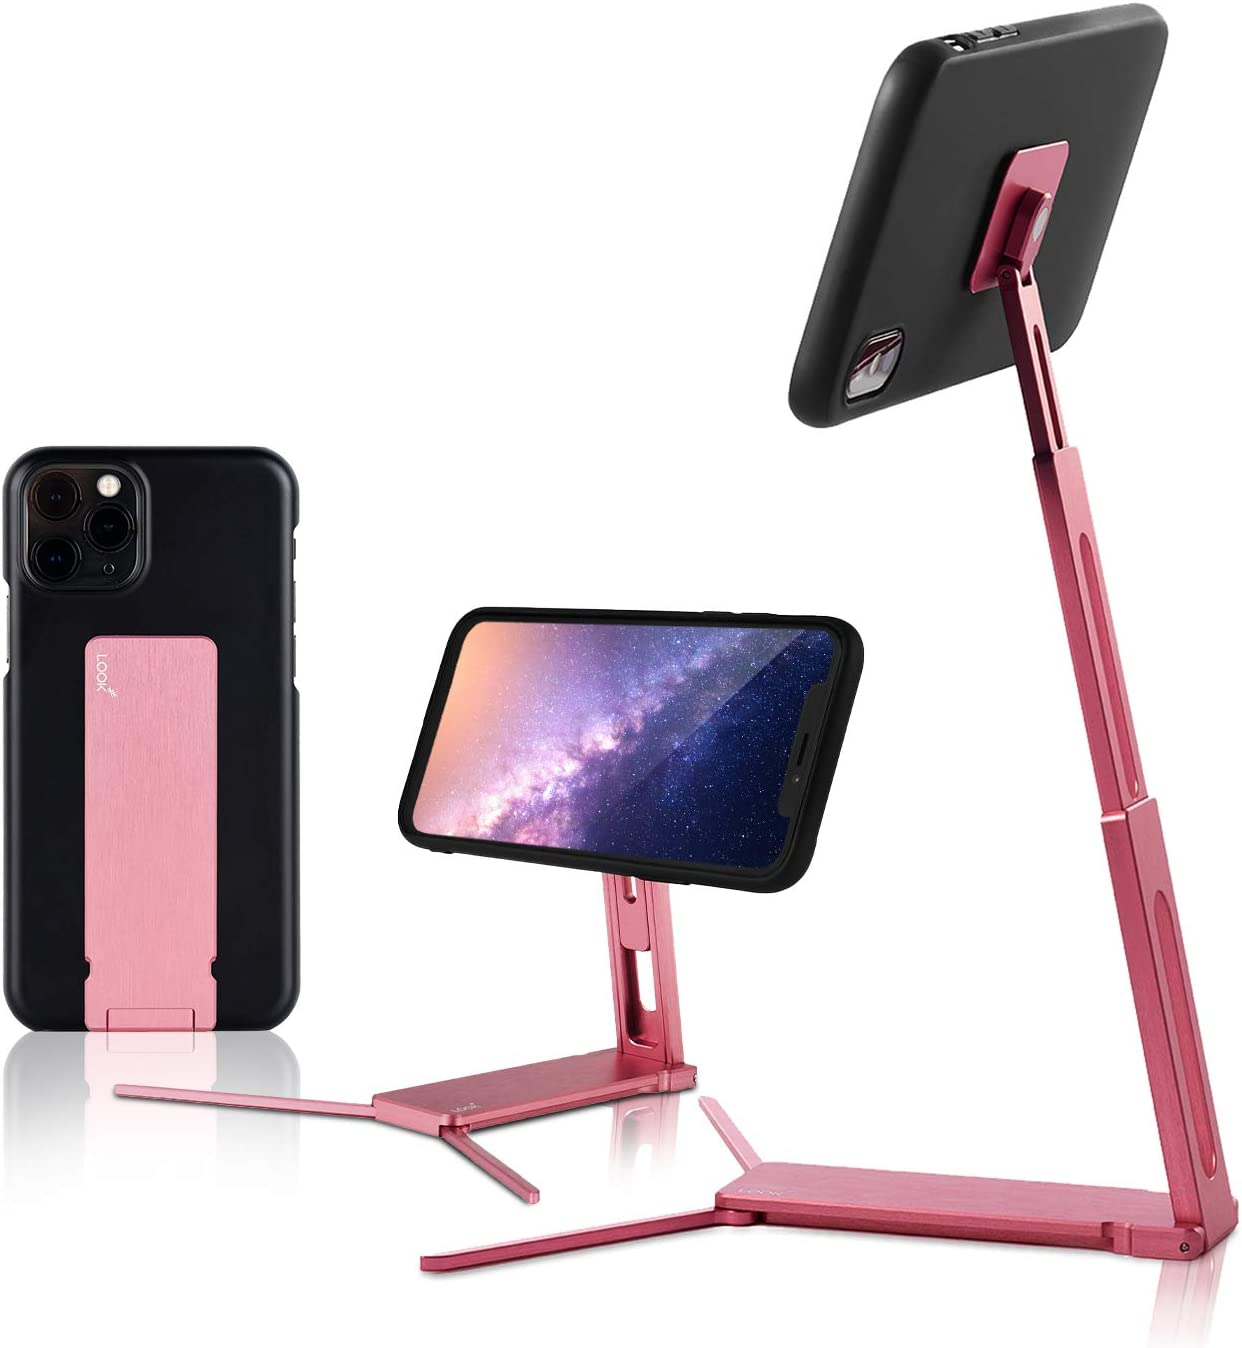 Lookstand + Detach Mount Pink Quartz Adjustable Cell Phone Stand Compatible with iPhone & Android - Cell Phone Holder for Bed | iPhone Holder iPhone Stand for Video | Desk Phone Stand for Recording